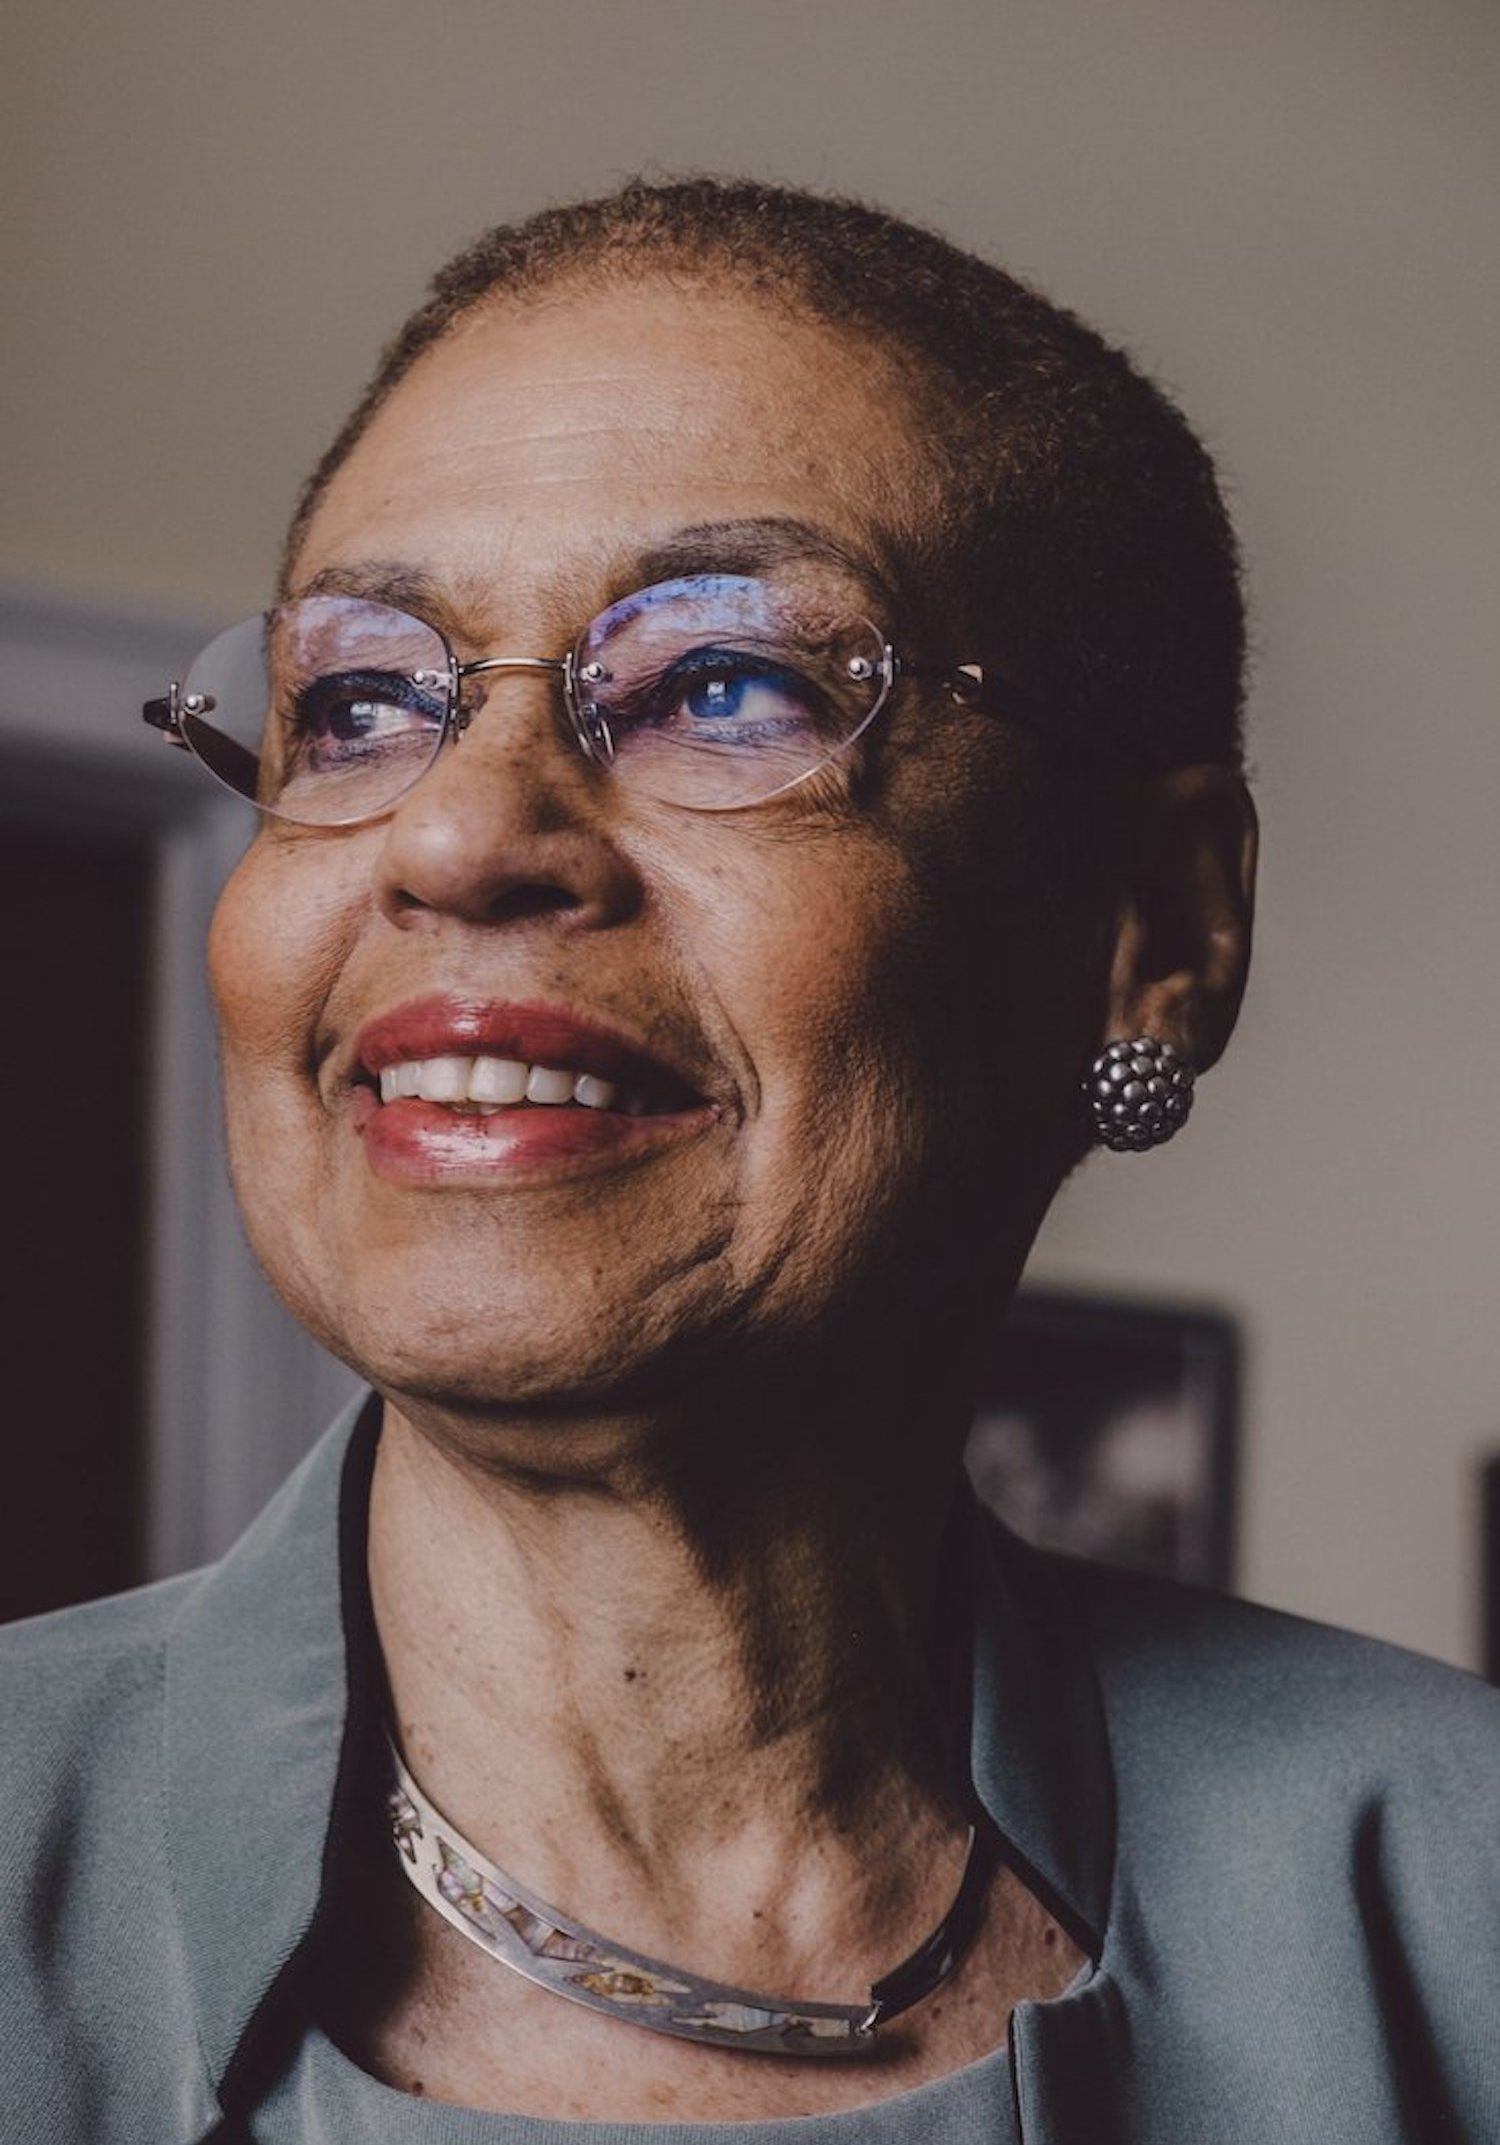 Eleanor Holmes Norton, Willoughby Avenue, The Five Fifths, KOLUMN Magazine, KOLUMN, African American Politics, Black in Politics